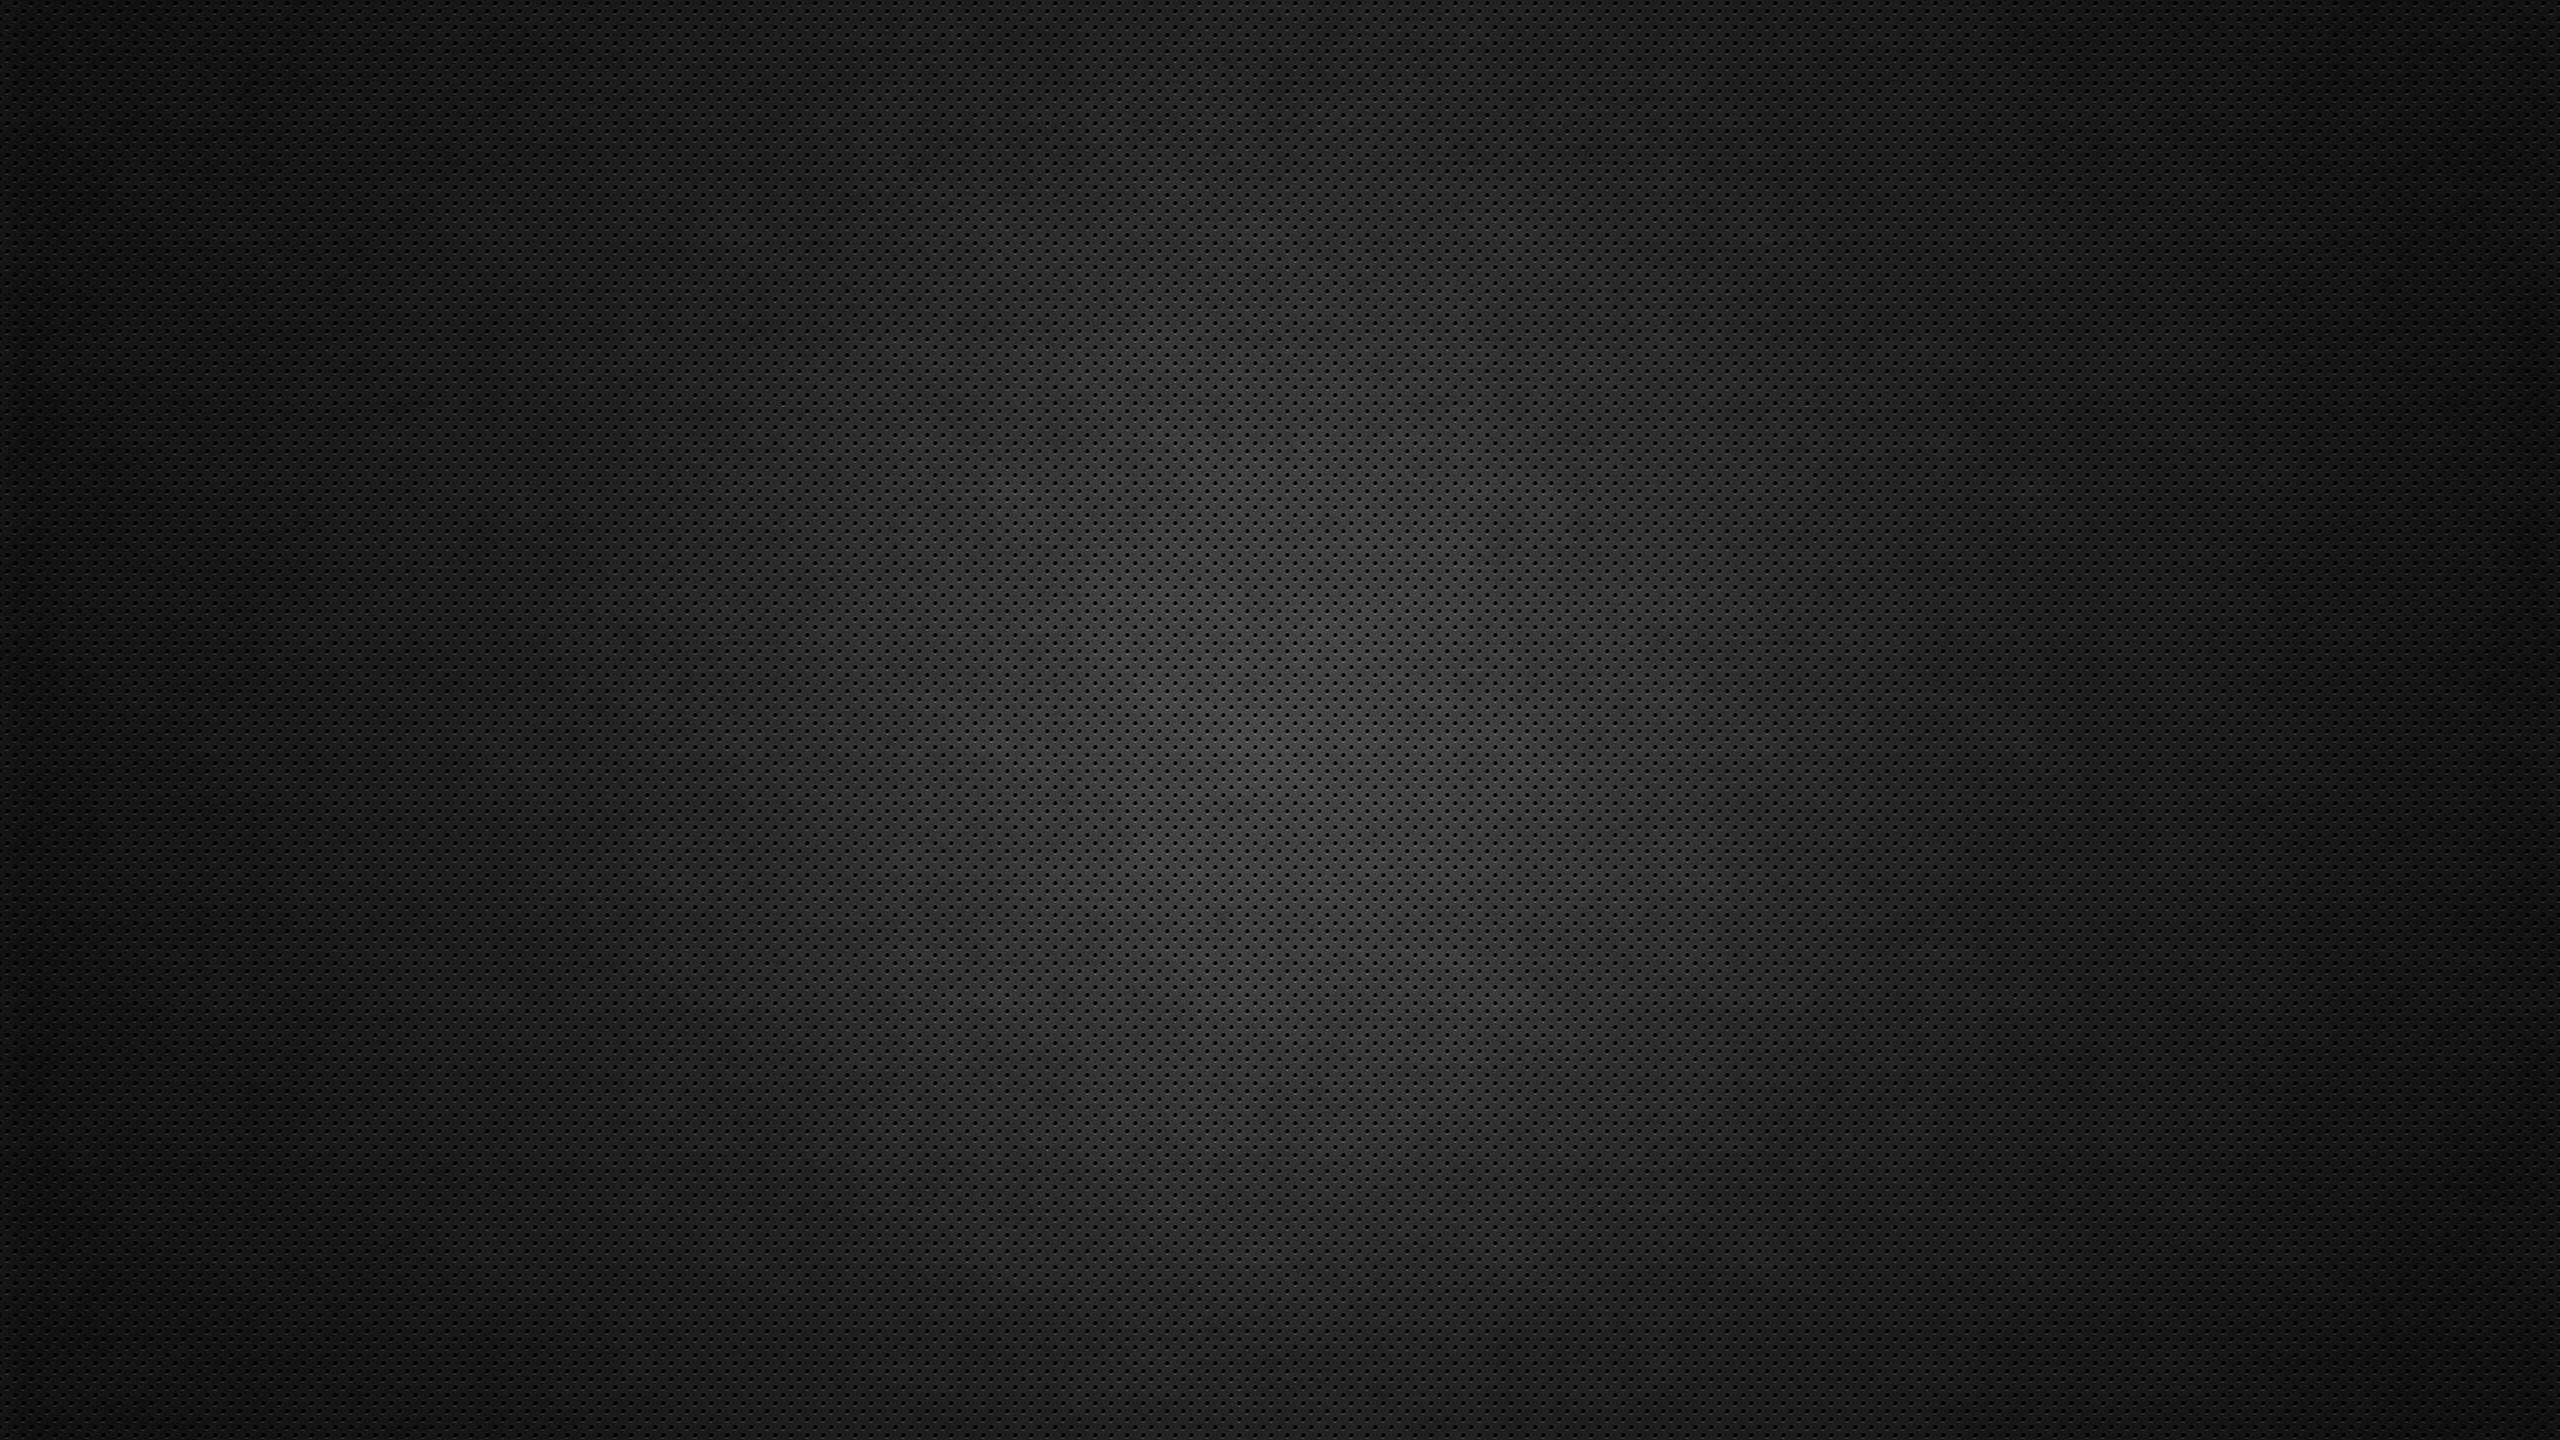 black-textured-wallpaper-metal-hole-2560x14401